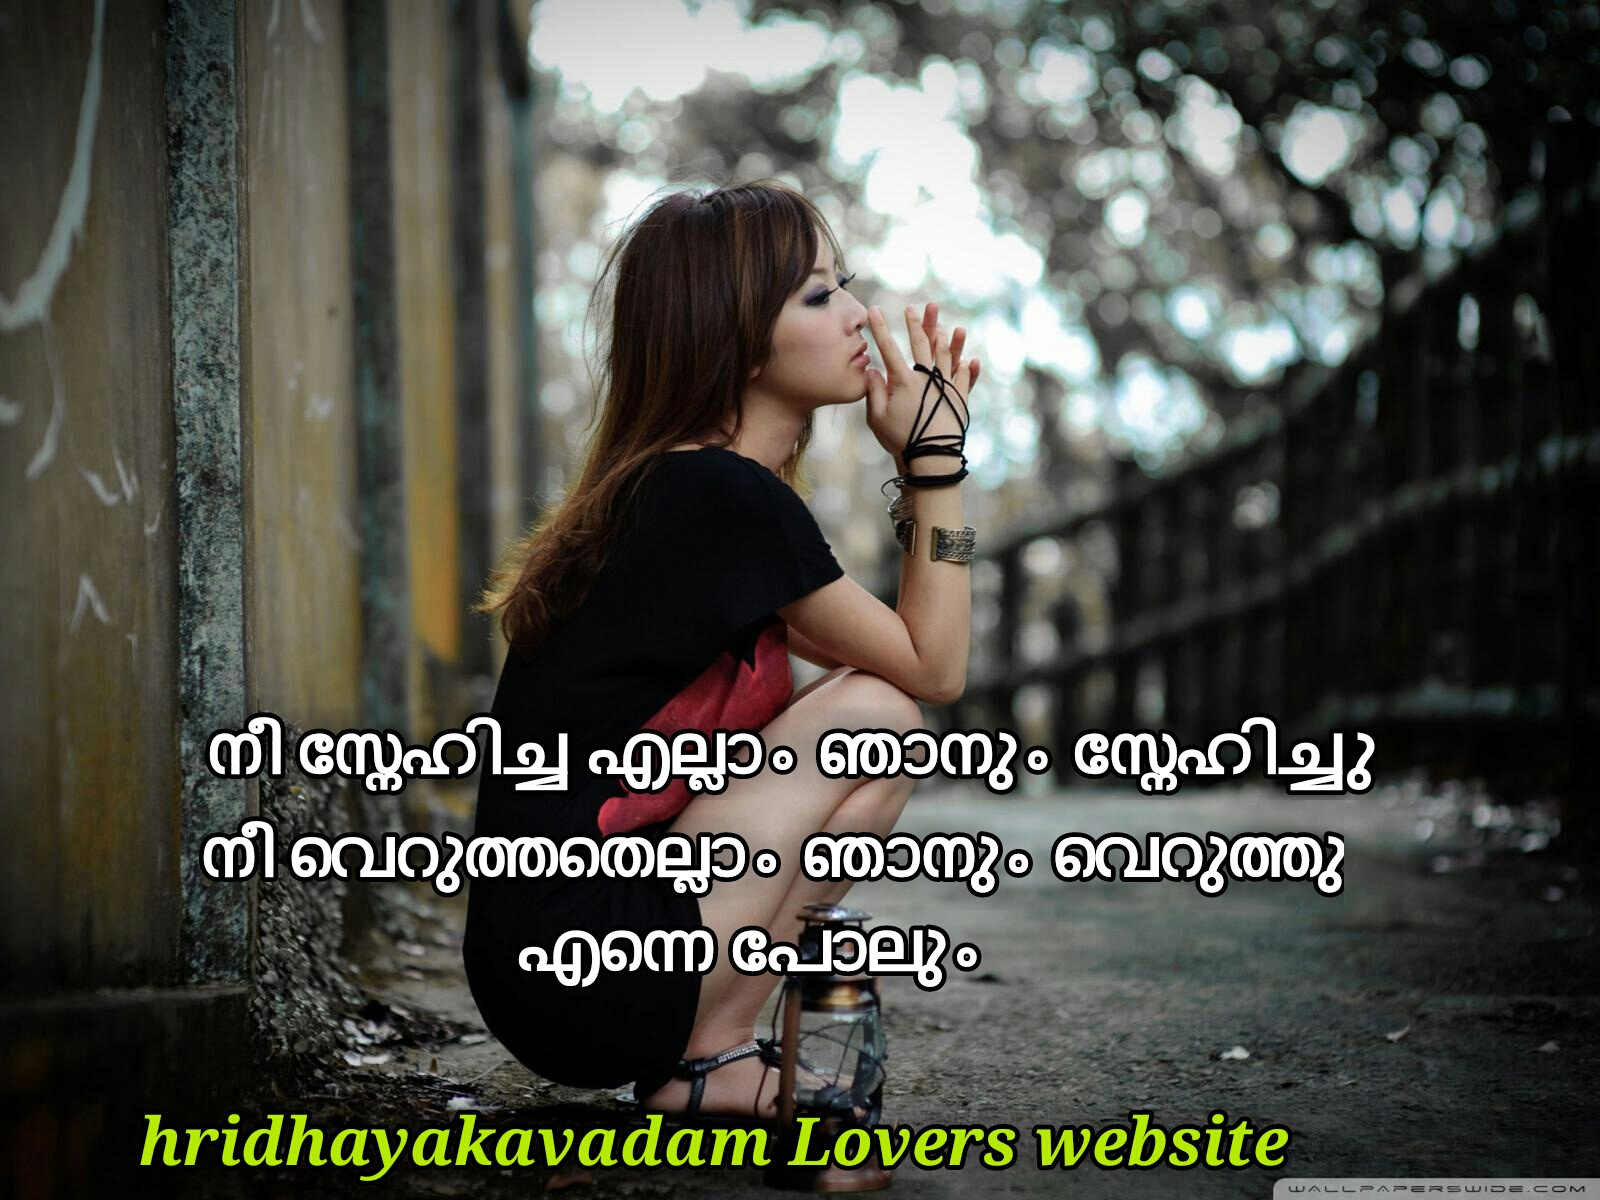 Malayalam Love Quotes Endearing Malayalam Love Quotes  Hridhayakavadam